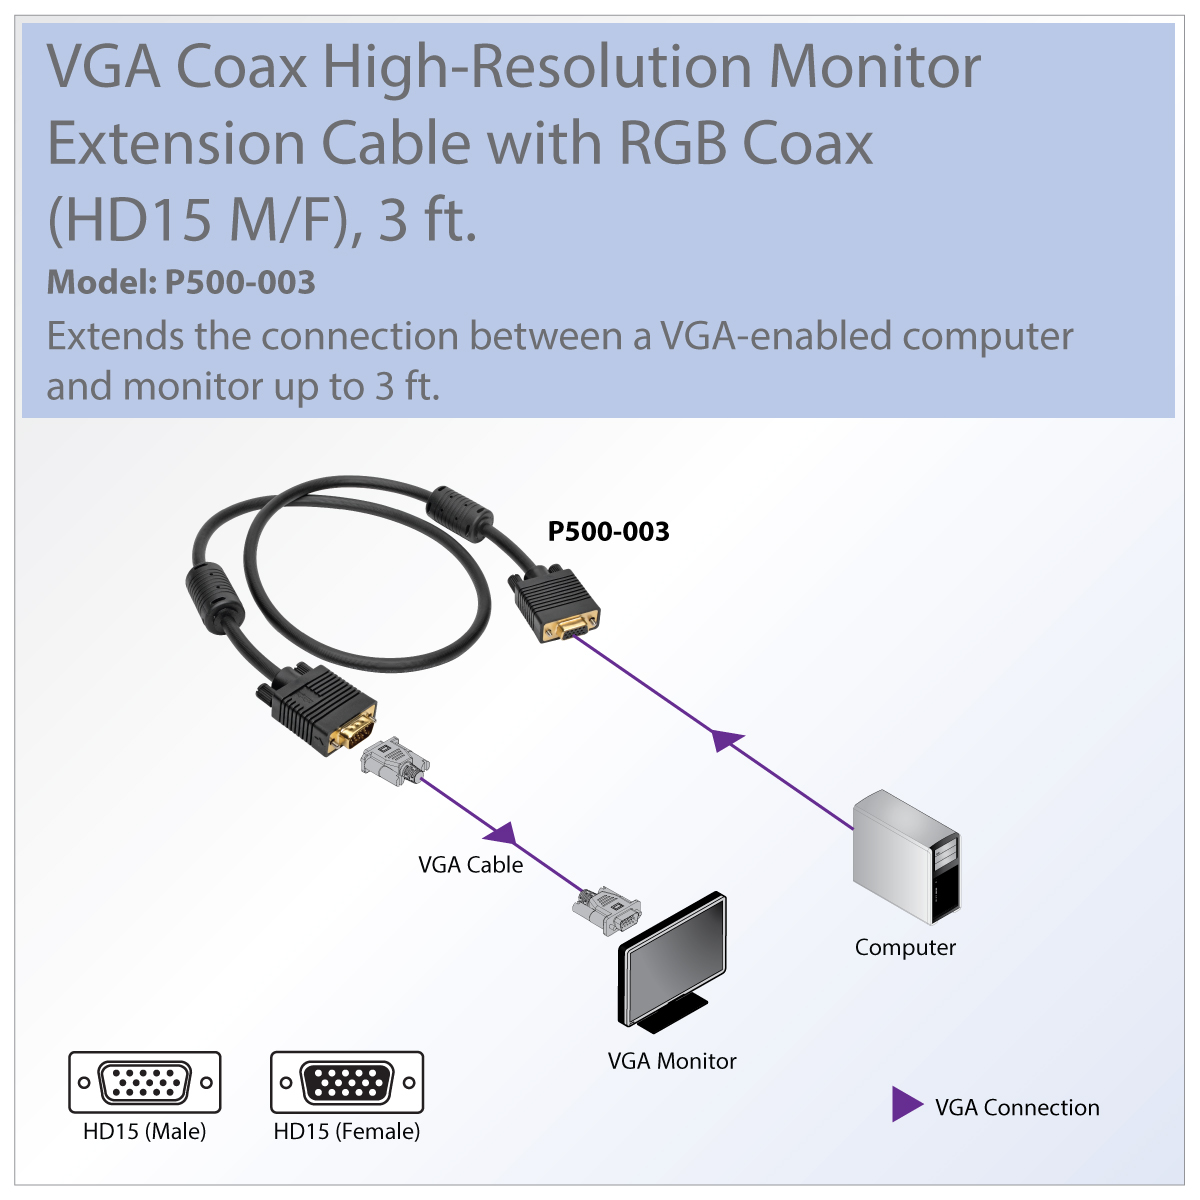 tripp lite vga monitor extension cable coax high resolution m fextends the distance between your vga computer and monitor by 3 ft